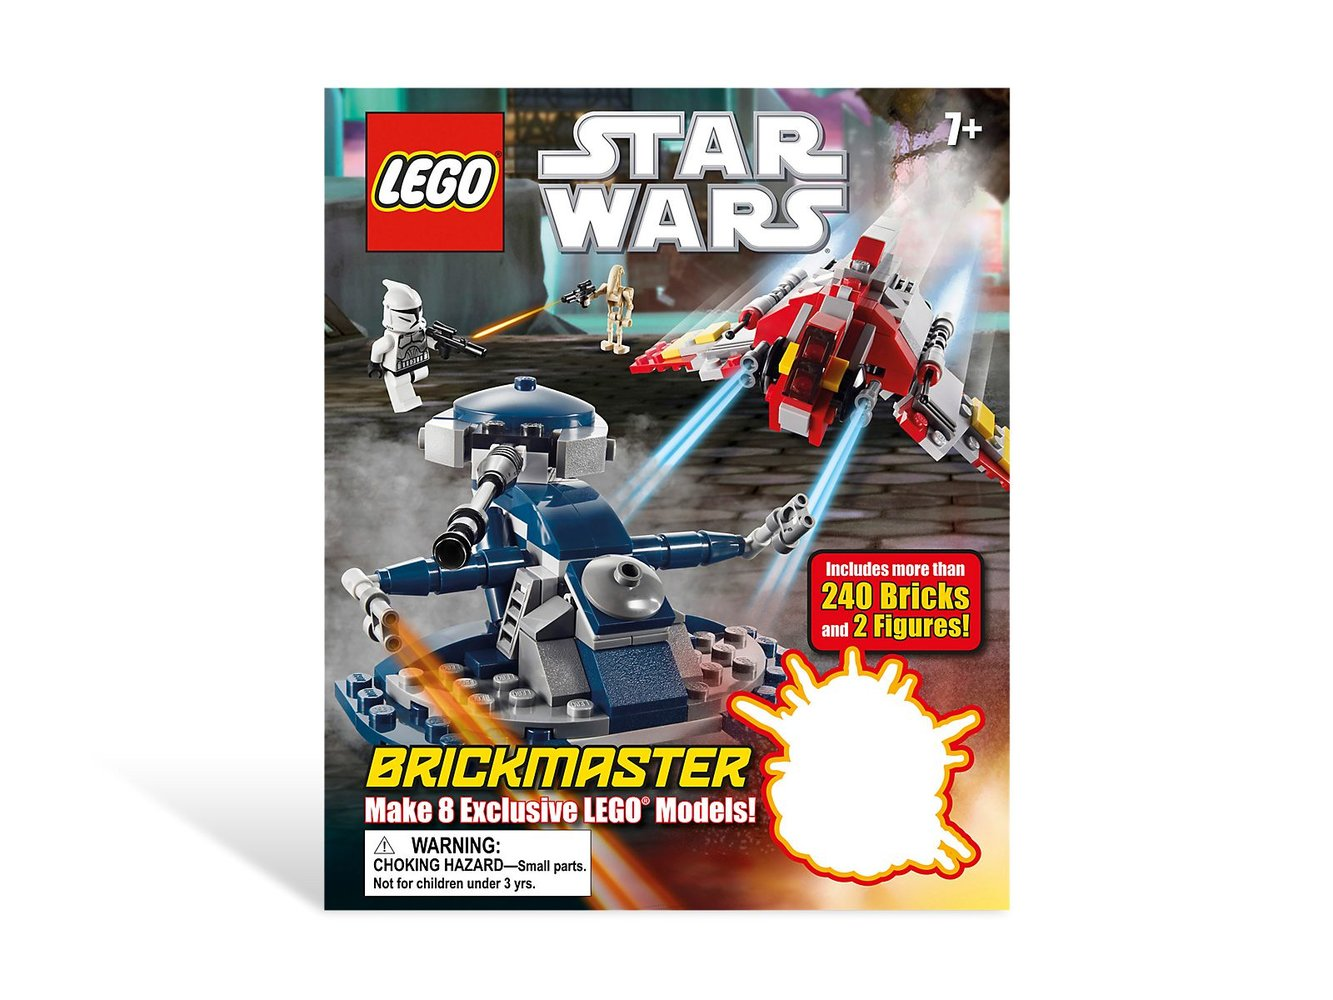 Star Wars: Brickmaster